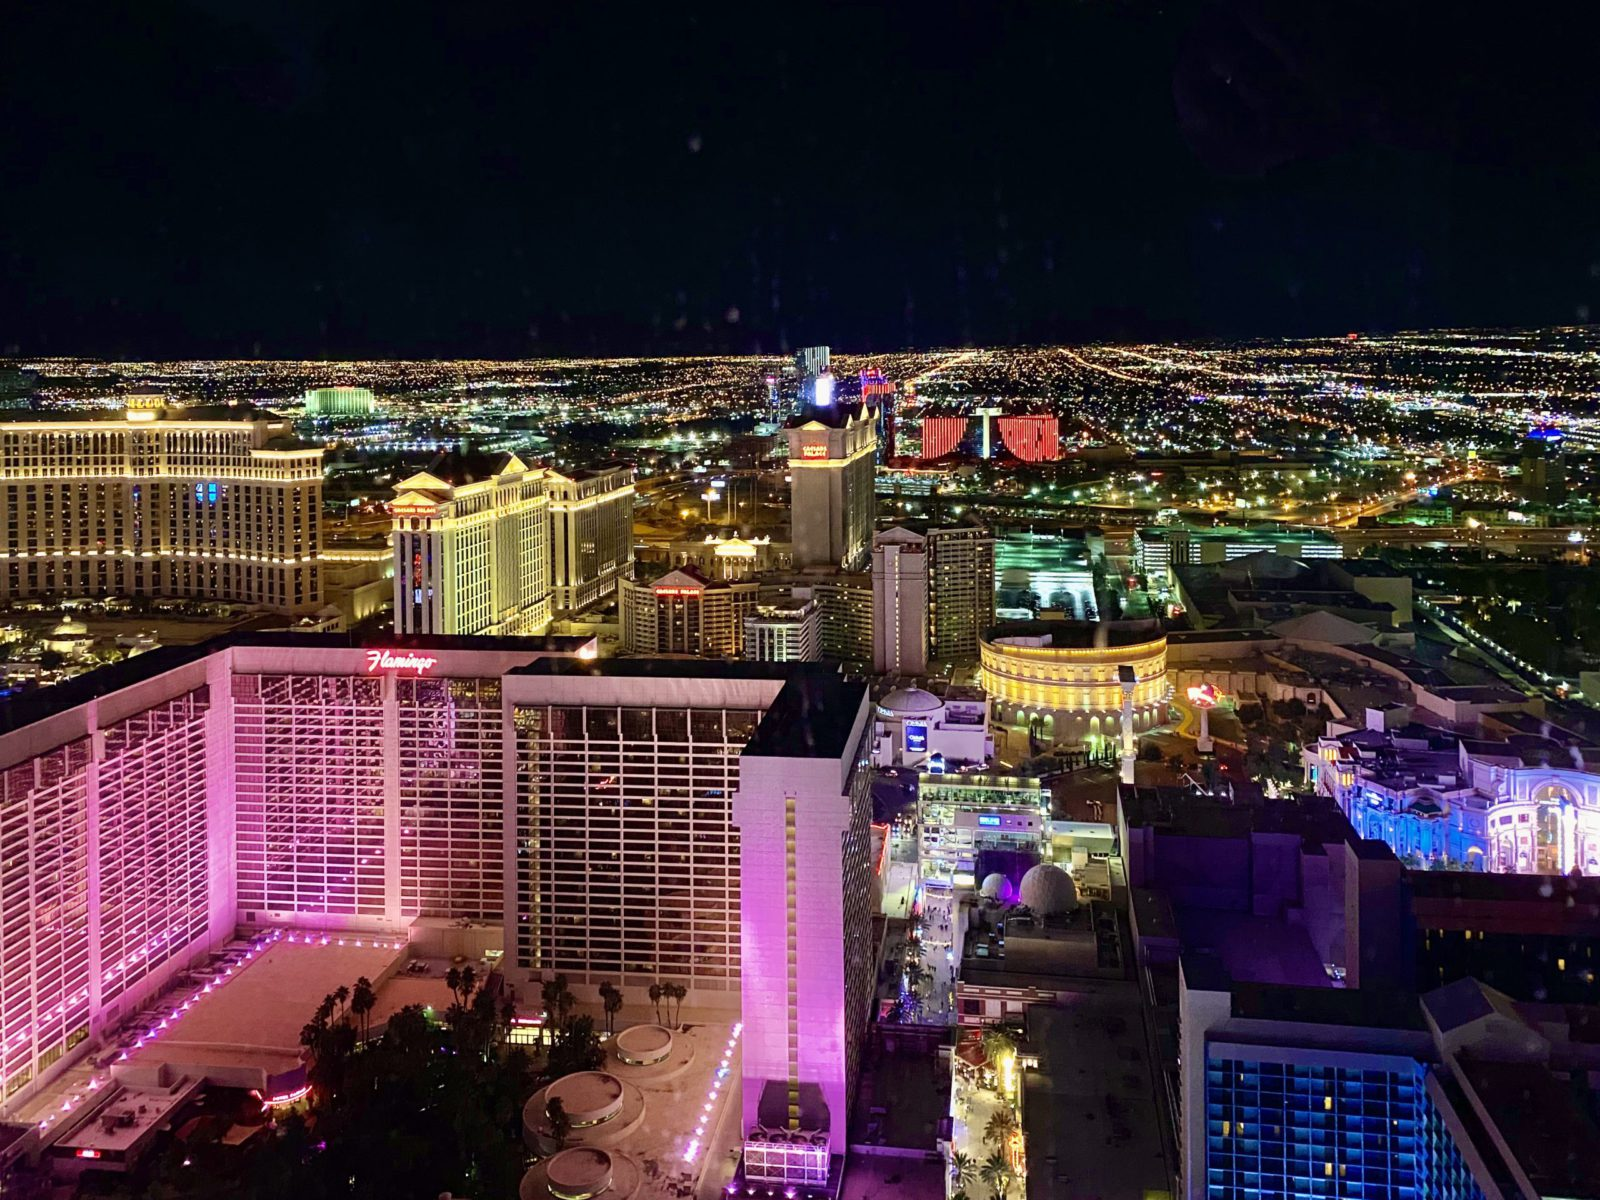 Flight Deal Round Trip From Dallas Area to Las Vegas #dallas #lasvegas #extendedweekend